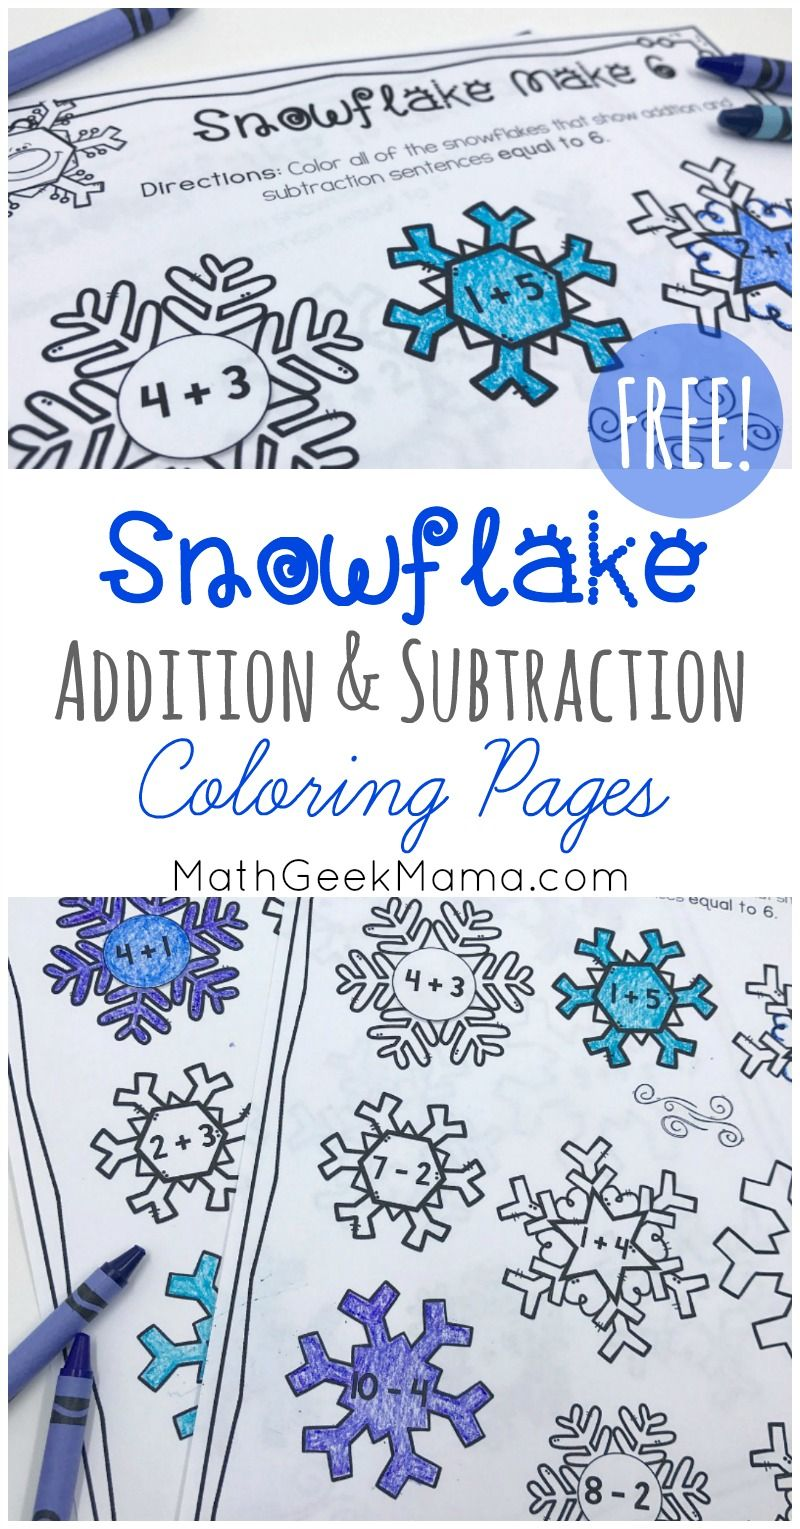 Simple Winter Addition and Subtraction Facts to 10 {FREE} Want a cute and fun way to practice addition and subtraction facts to 10? These snowflake coloring pages are a great introduction to a discussion of patterns, composing and decomposing numbers and more. Get them FREE!